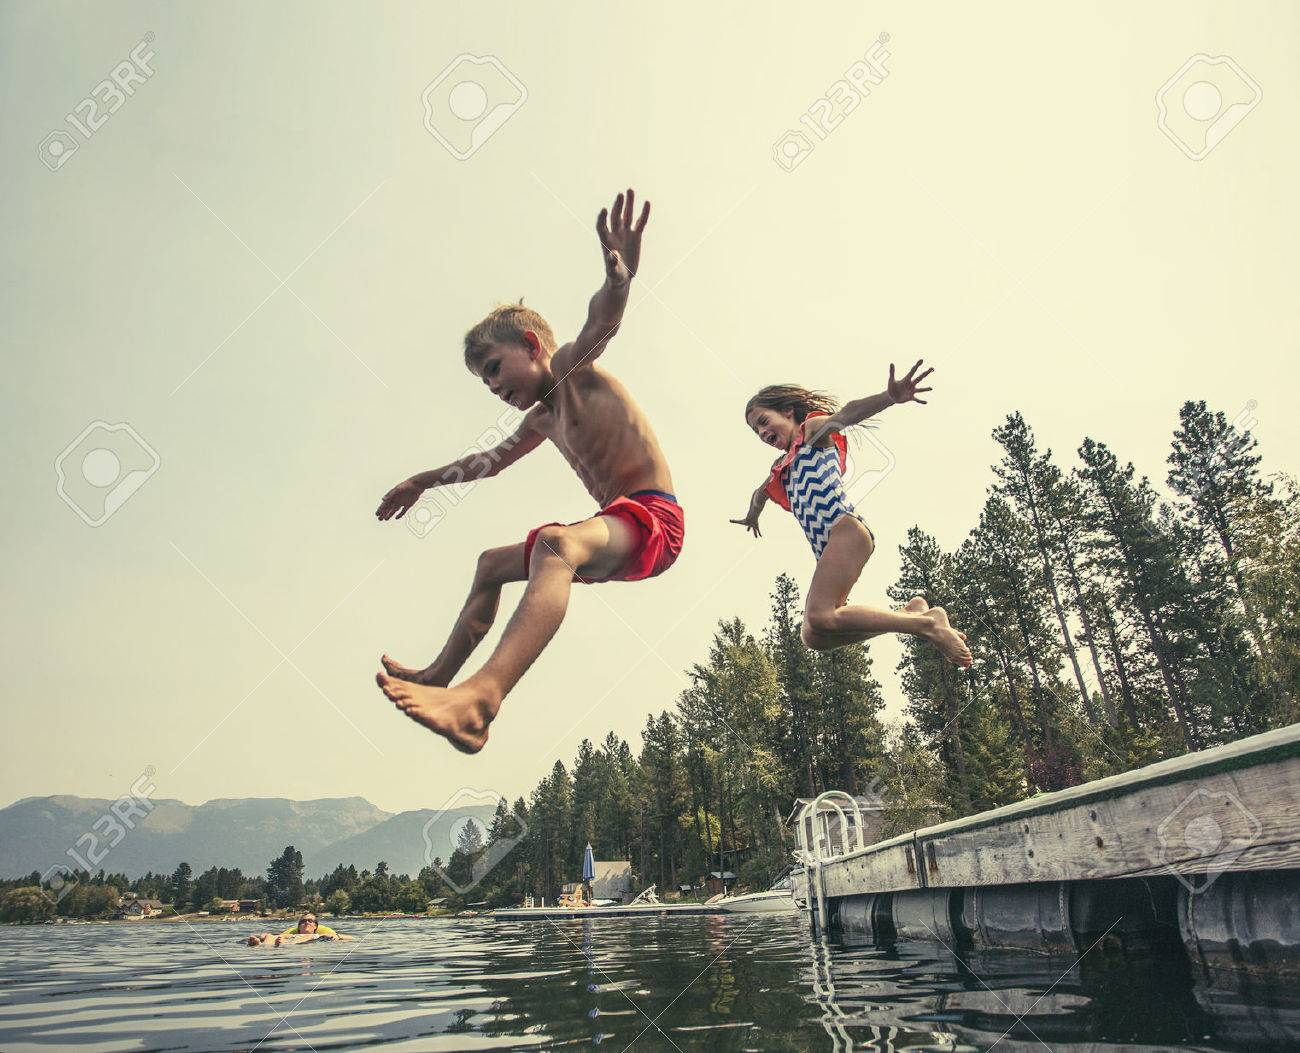 Kids jumping off the dock into a beautiful mountain lake. Having fun on a summer vacation at the lake with friends - 54565686